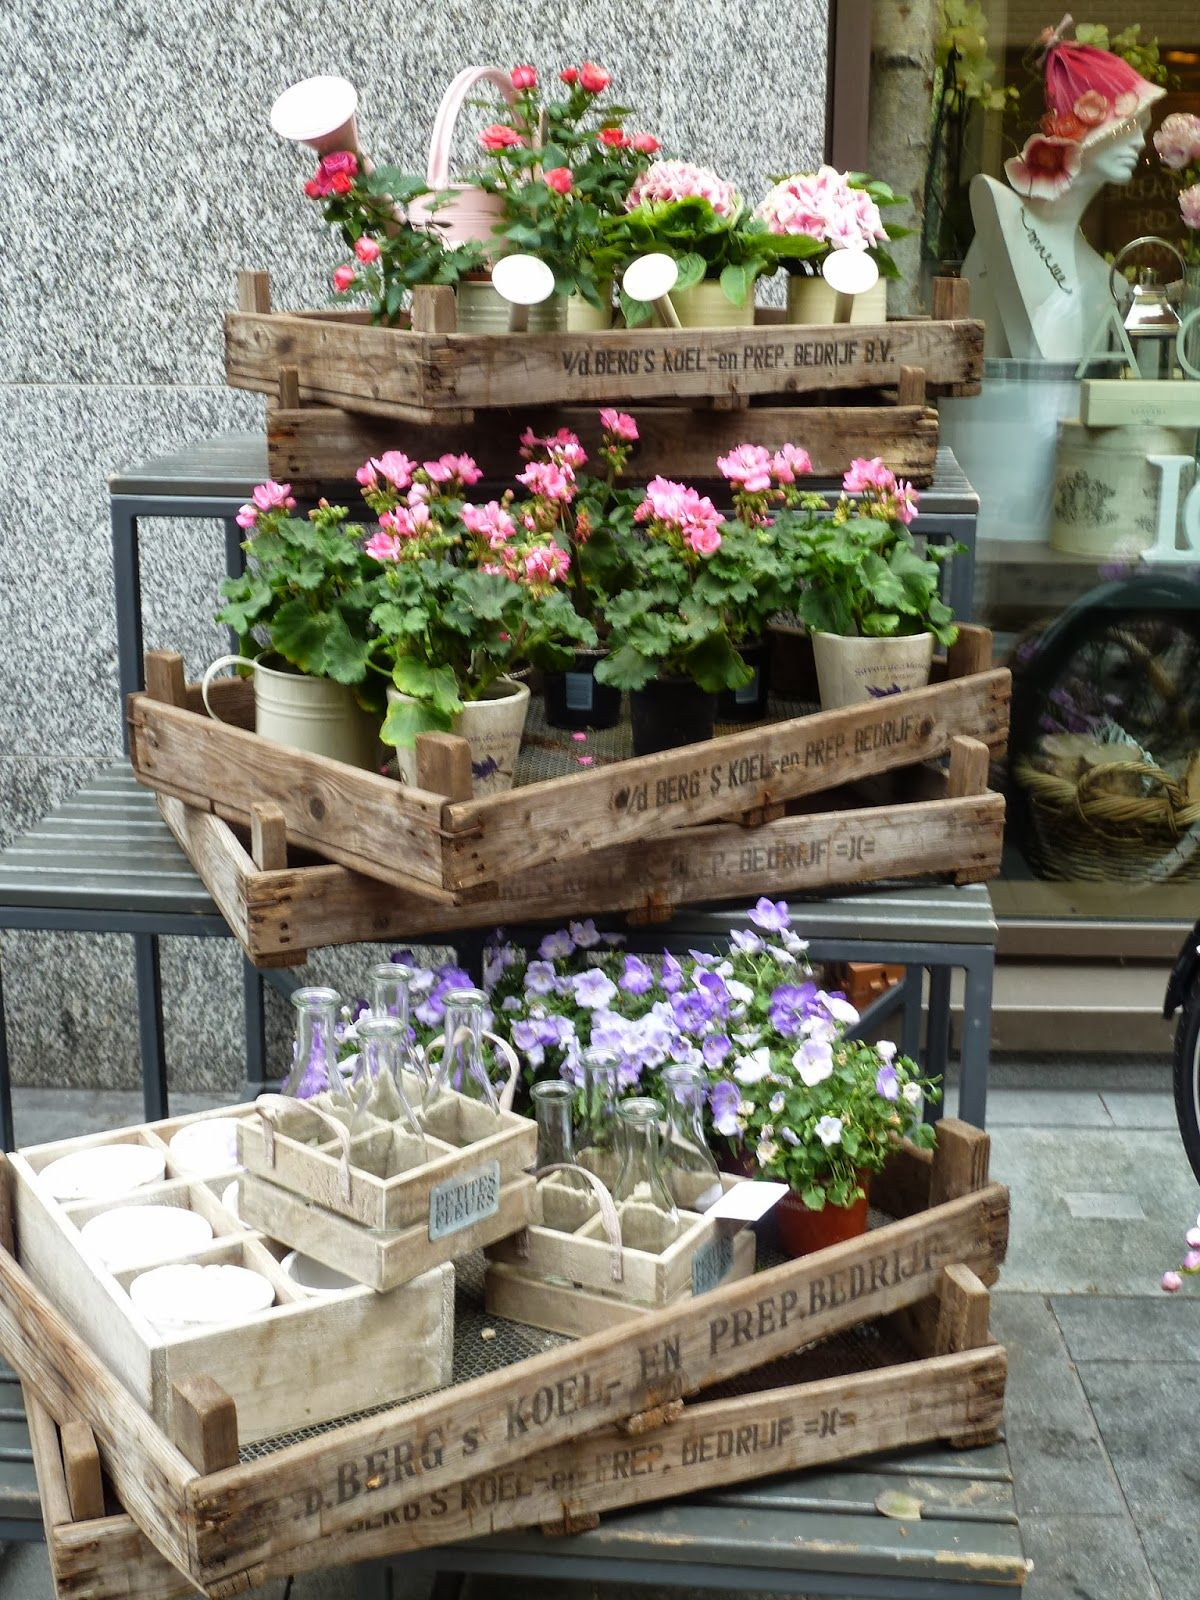 A Pretty Place To Play: Covent Garden's Back Streets